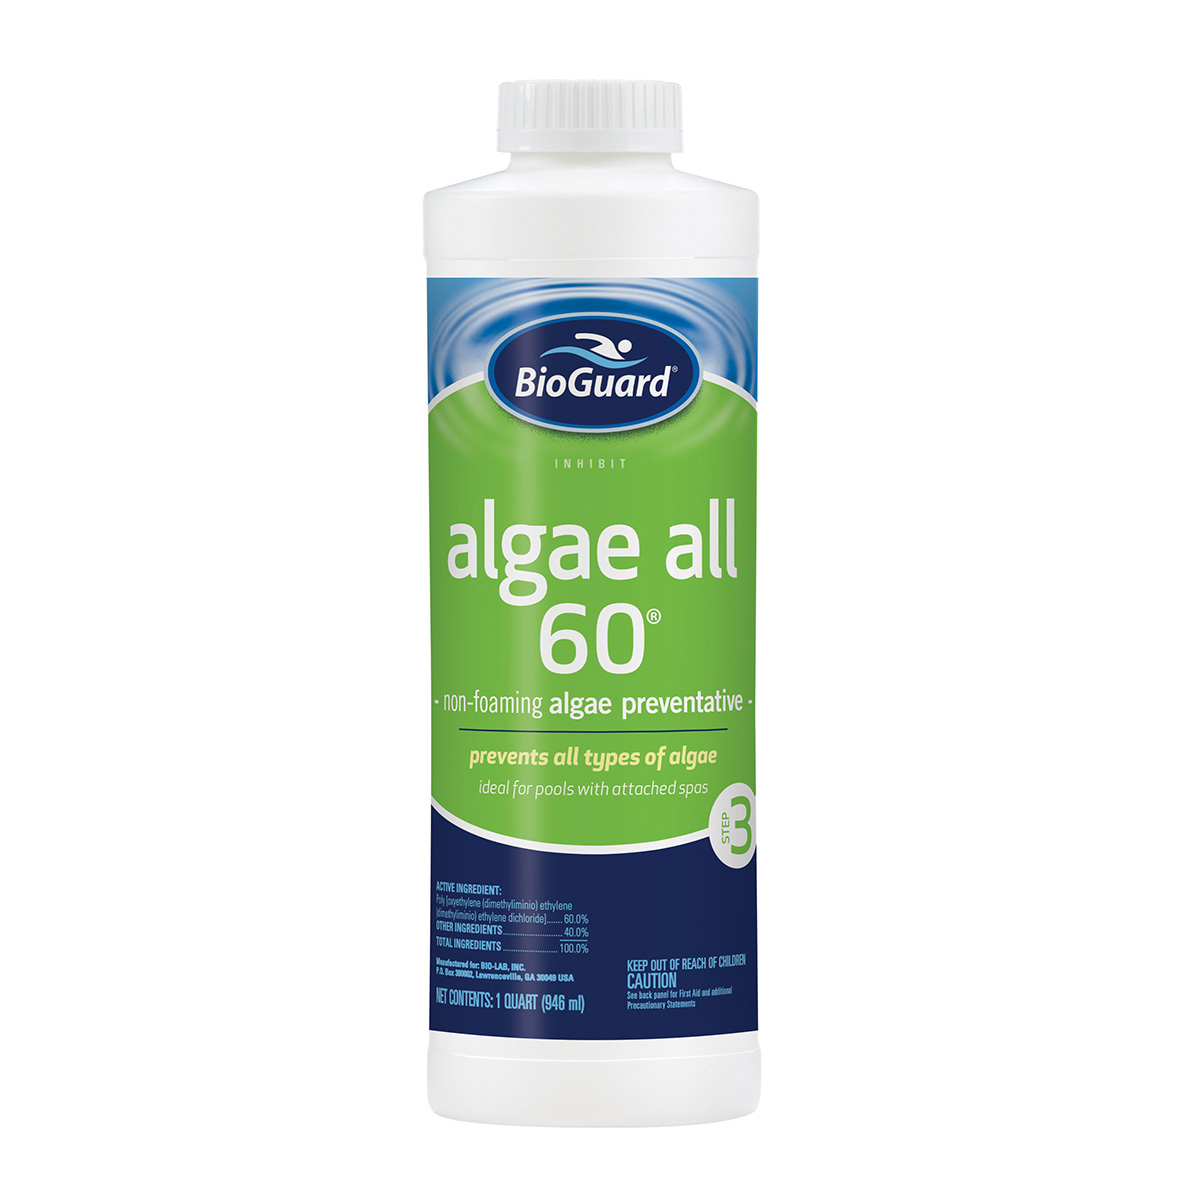 Algae All 60® Product Image